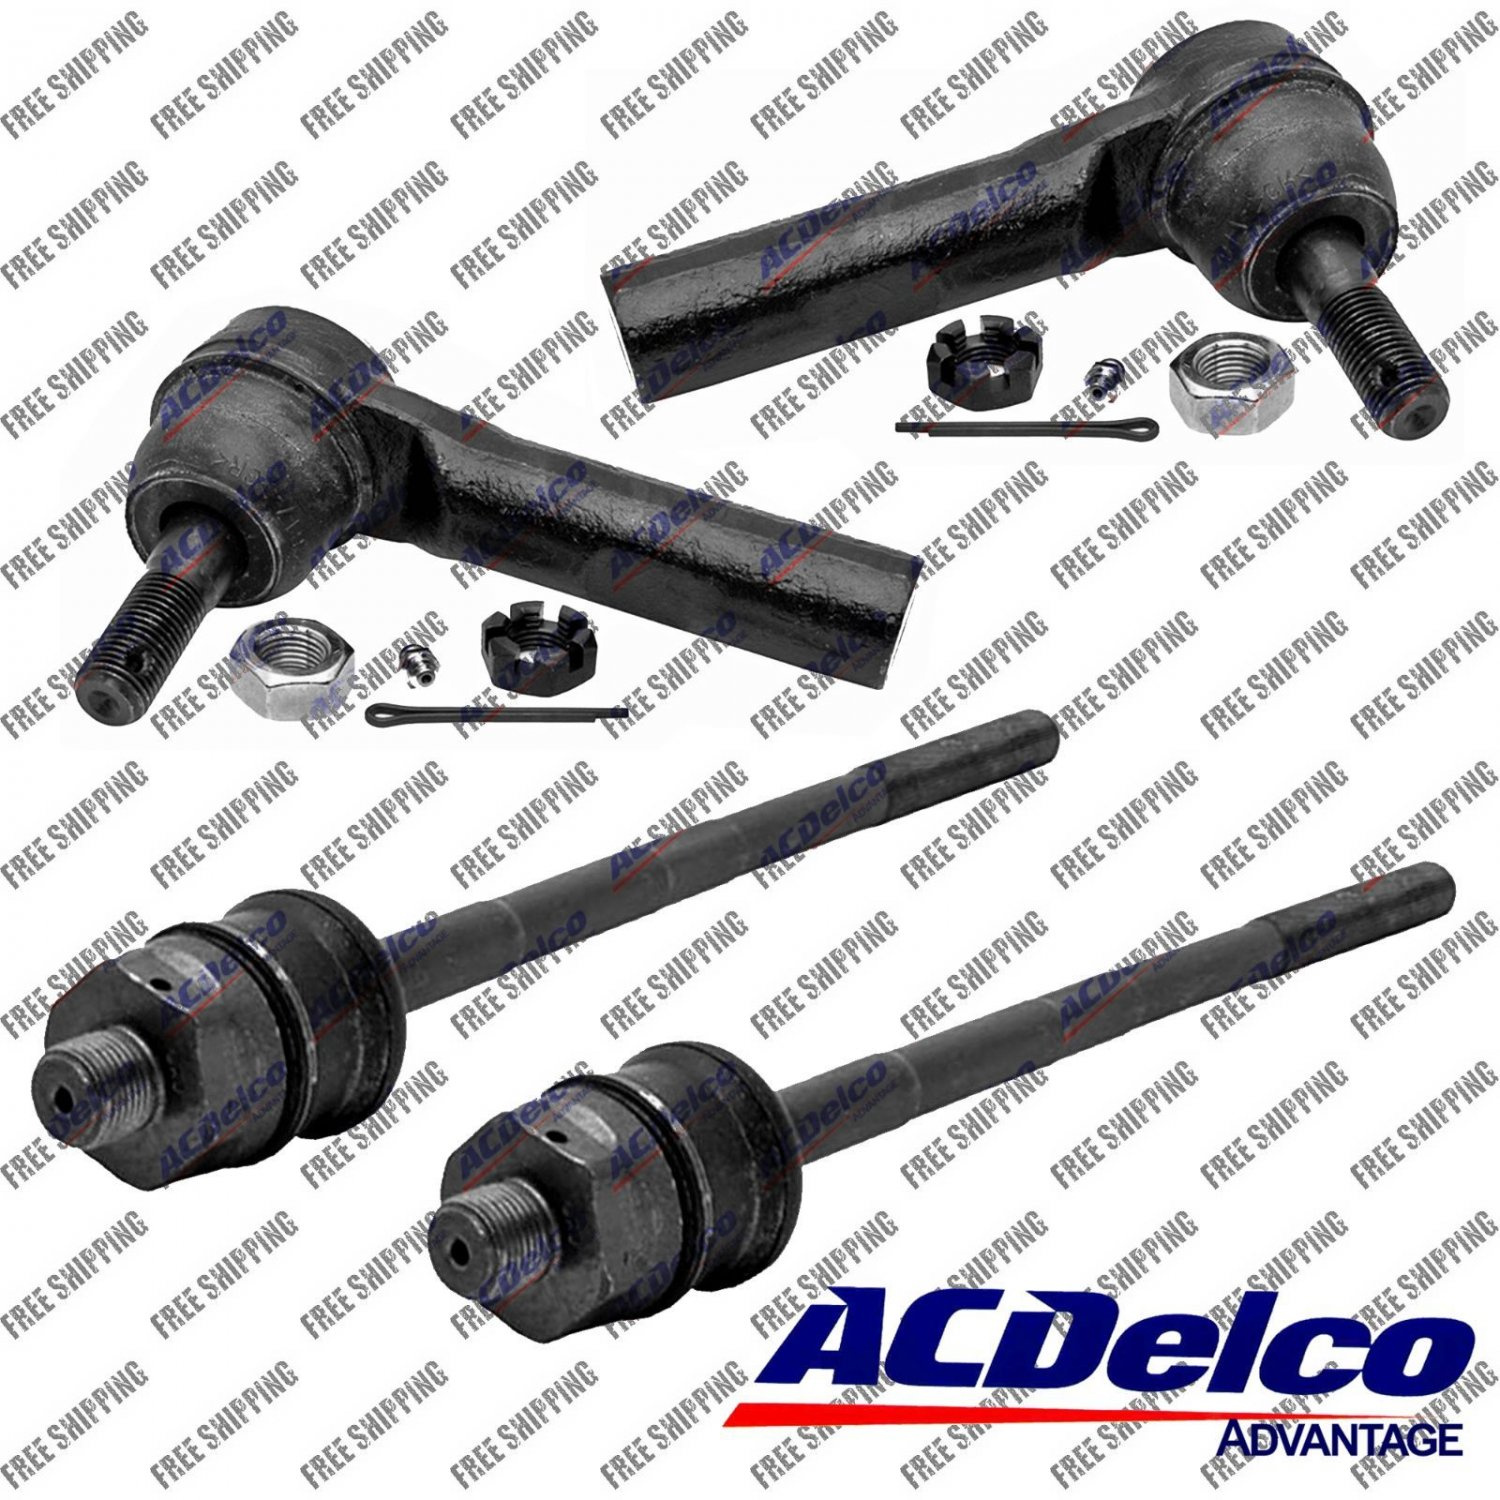 New Steering Tie Rod End Set ACDelco Advantage 46A0785A 46A0787A Fits GMC Yukon